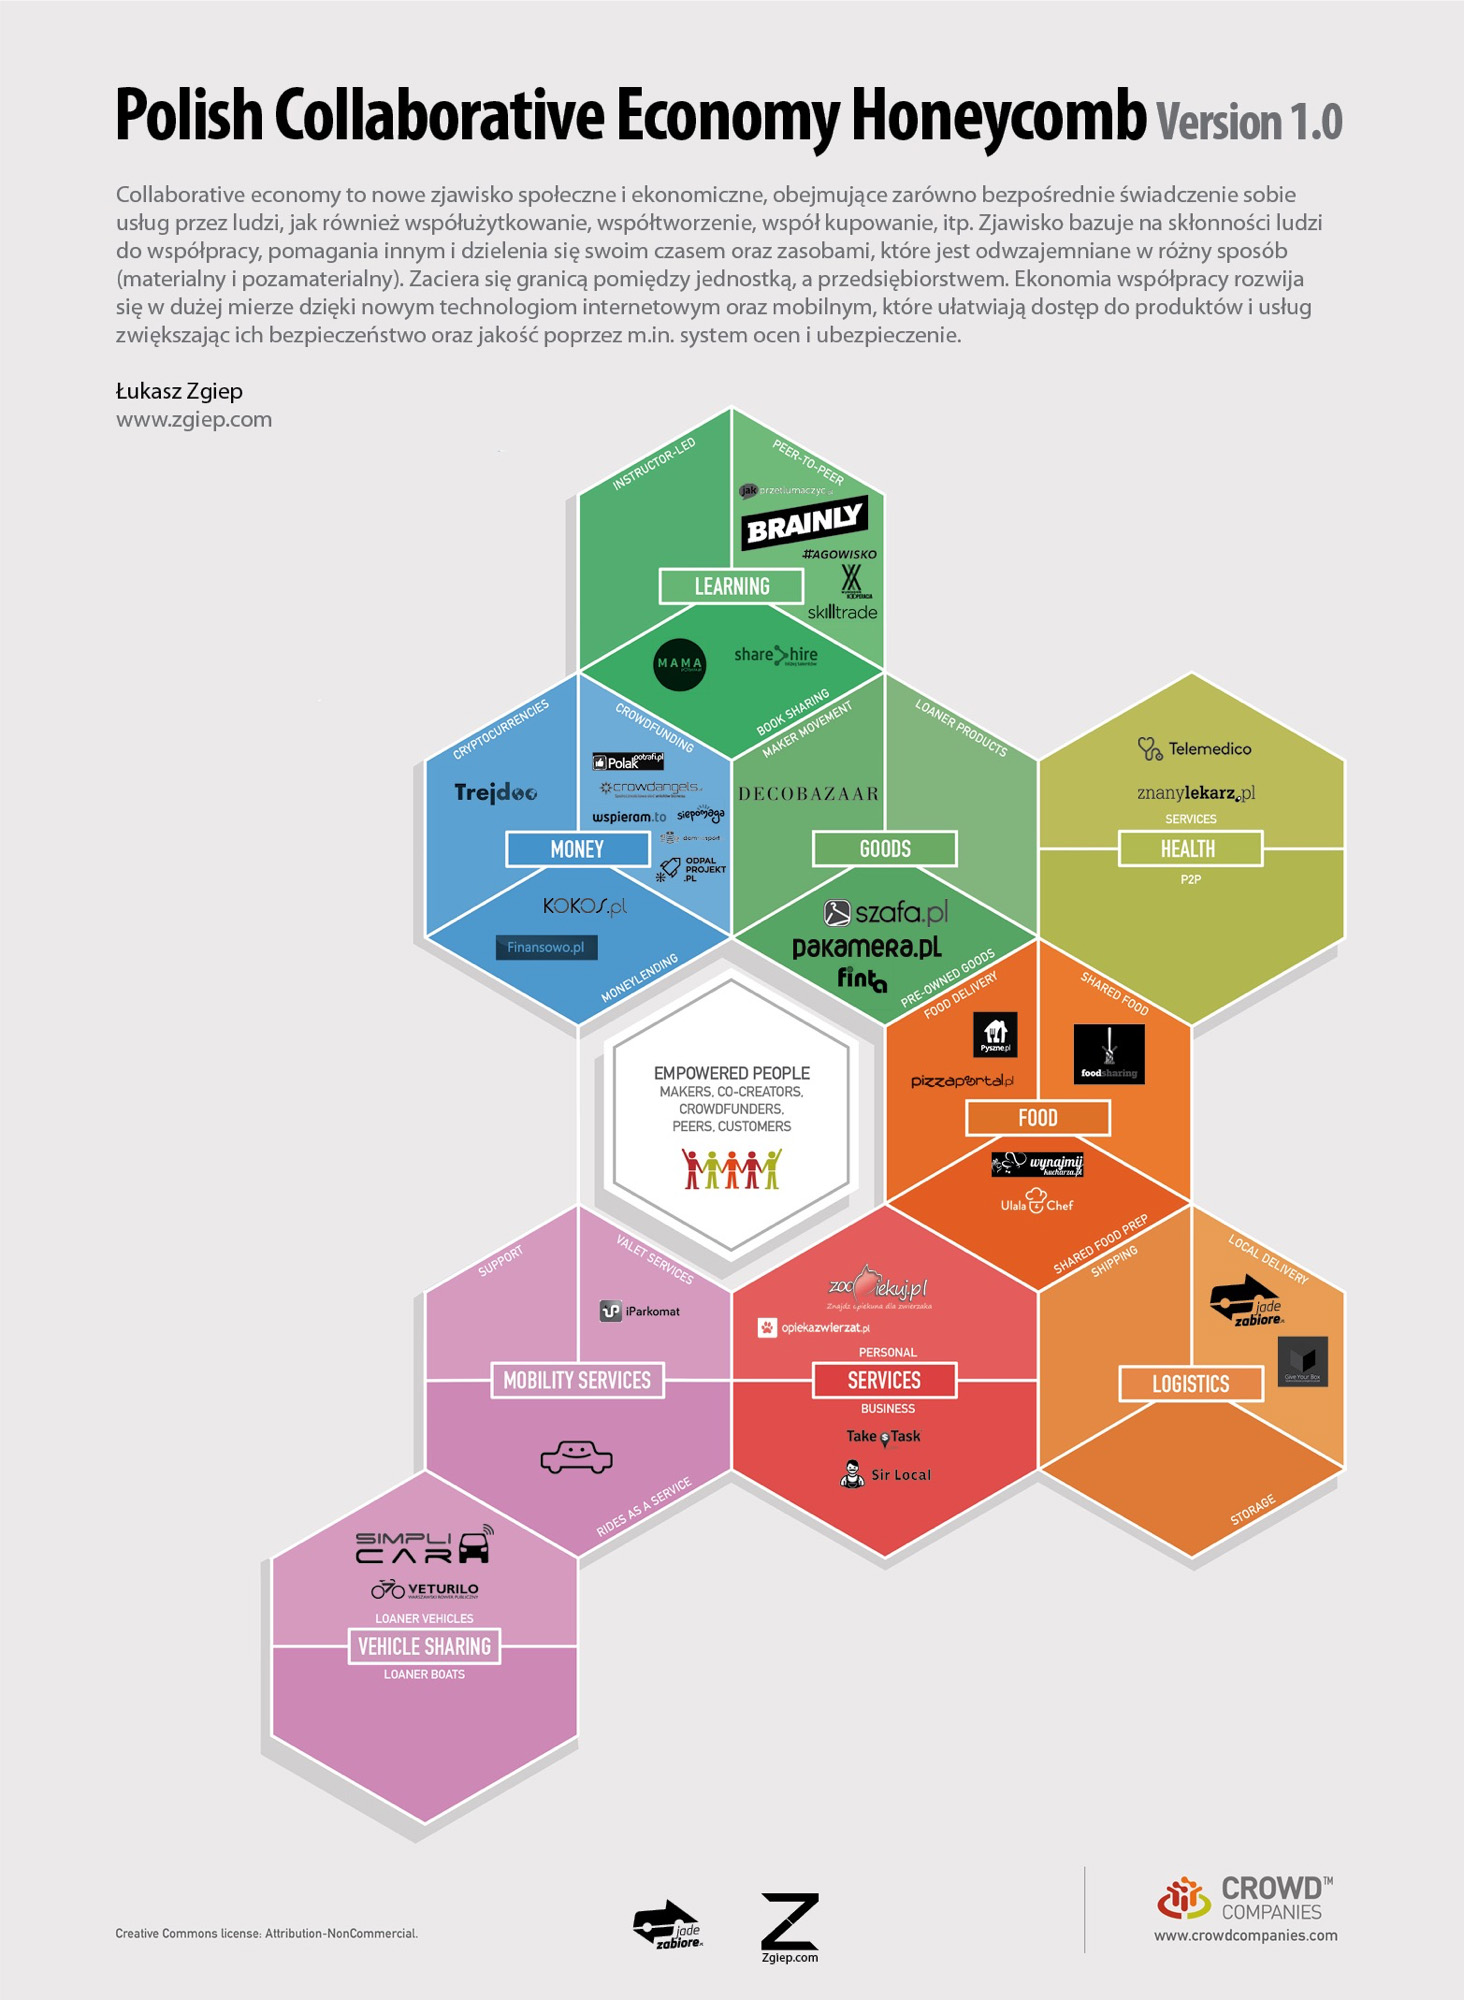 Polish Collaborative Economy Honeycomb 1.0